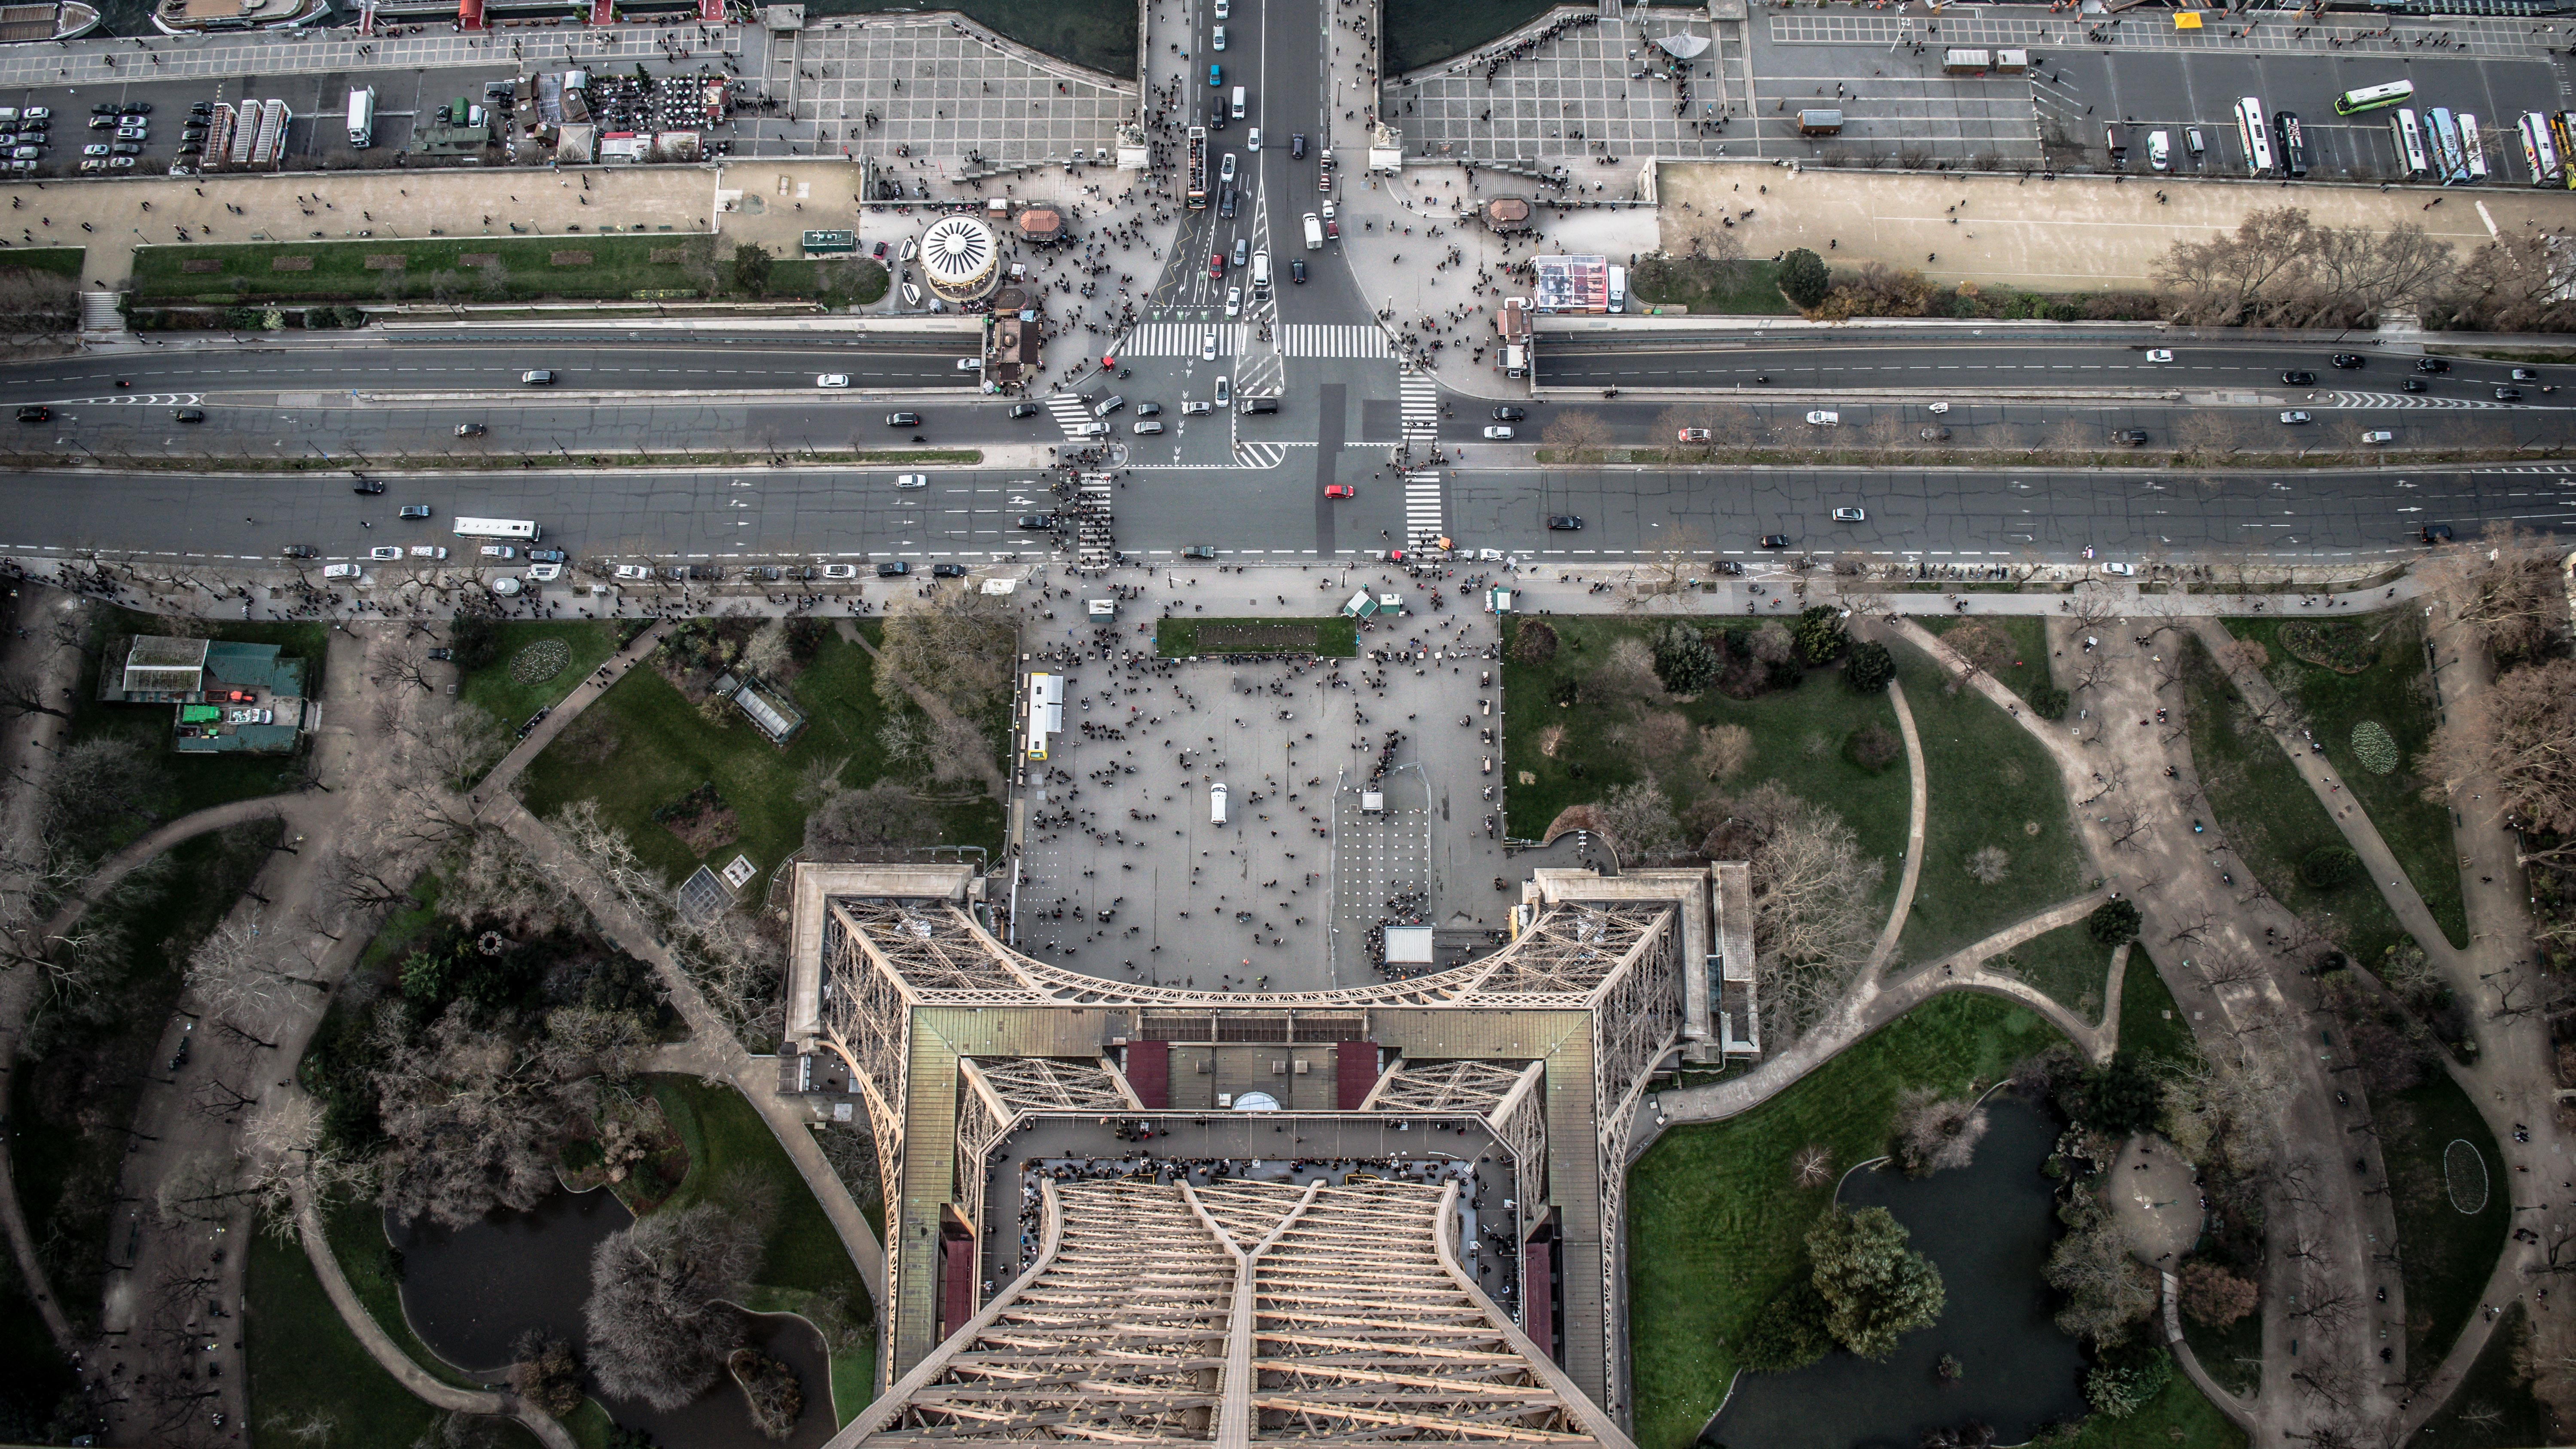 High angle shot taken from the top of the Eiffel Tower